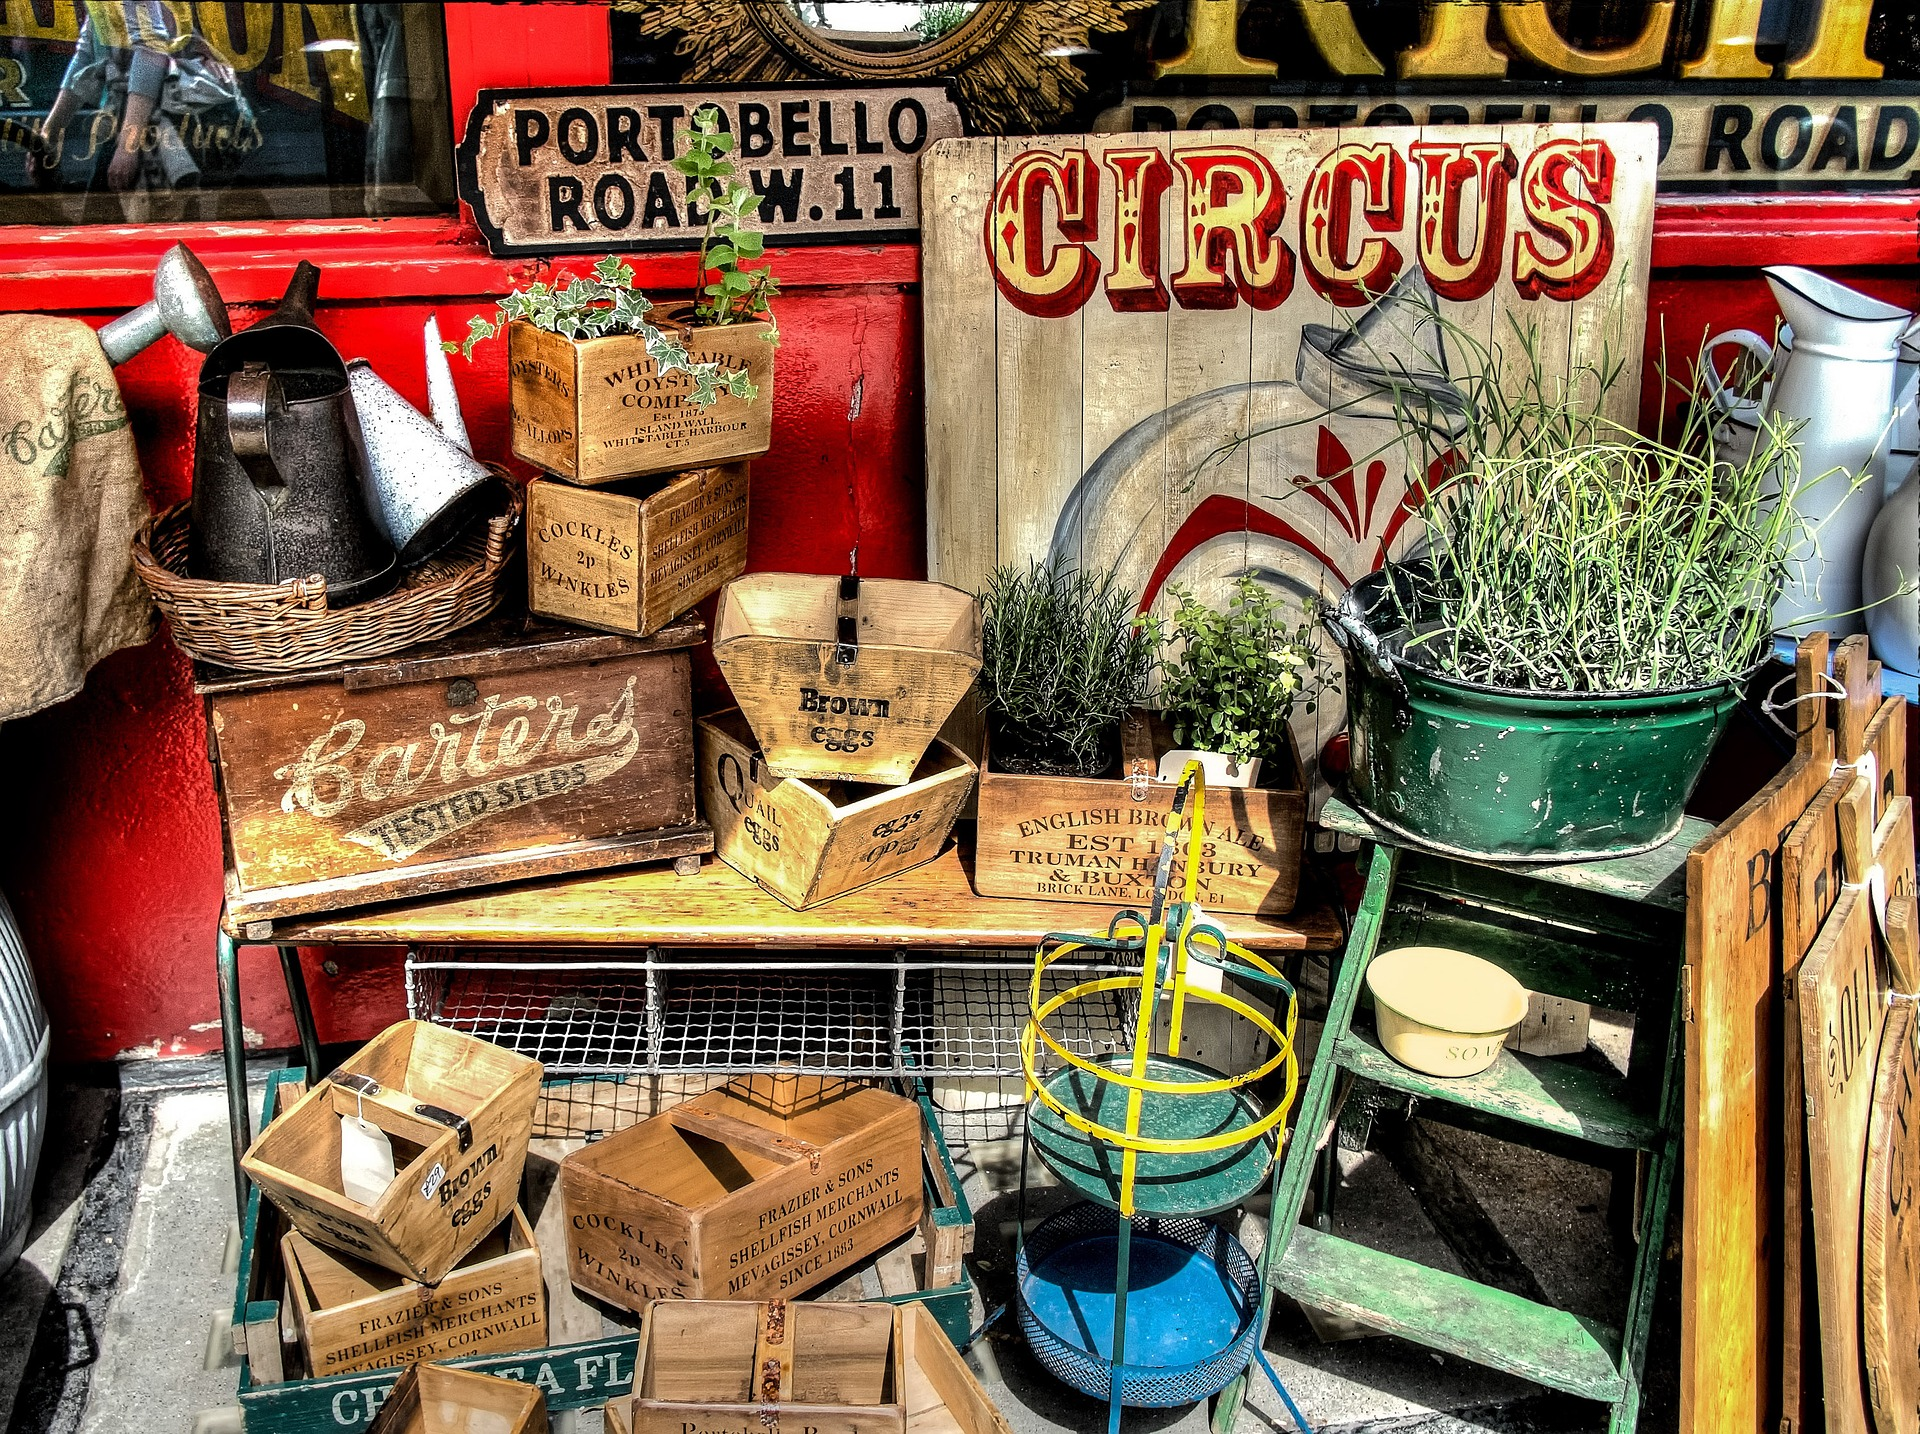 Picture of items for sale in Portobello Road